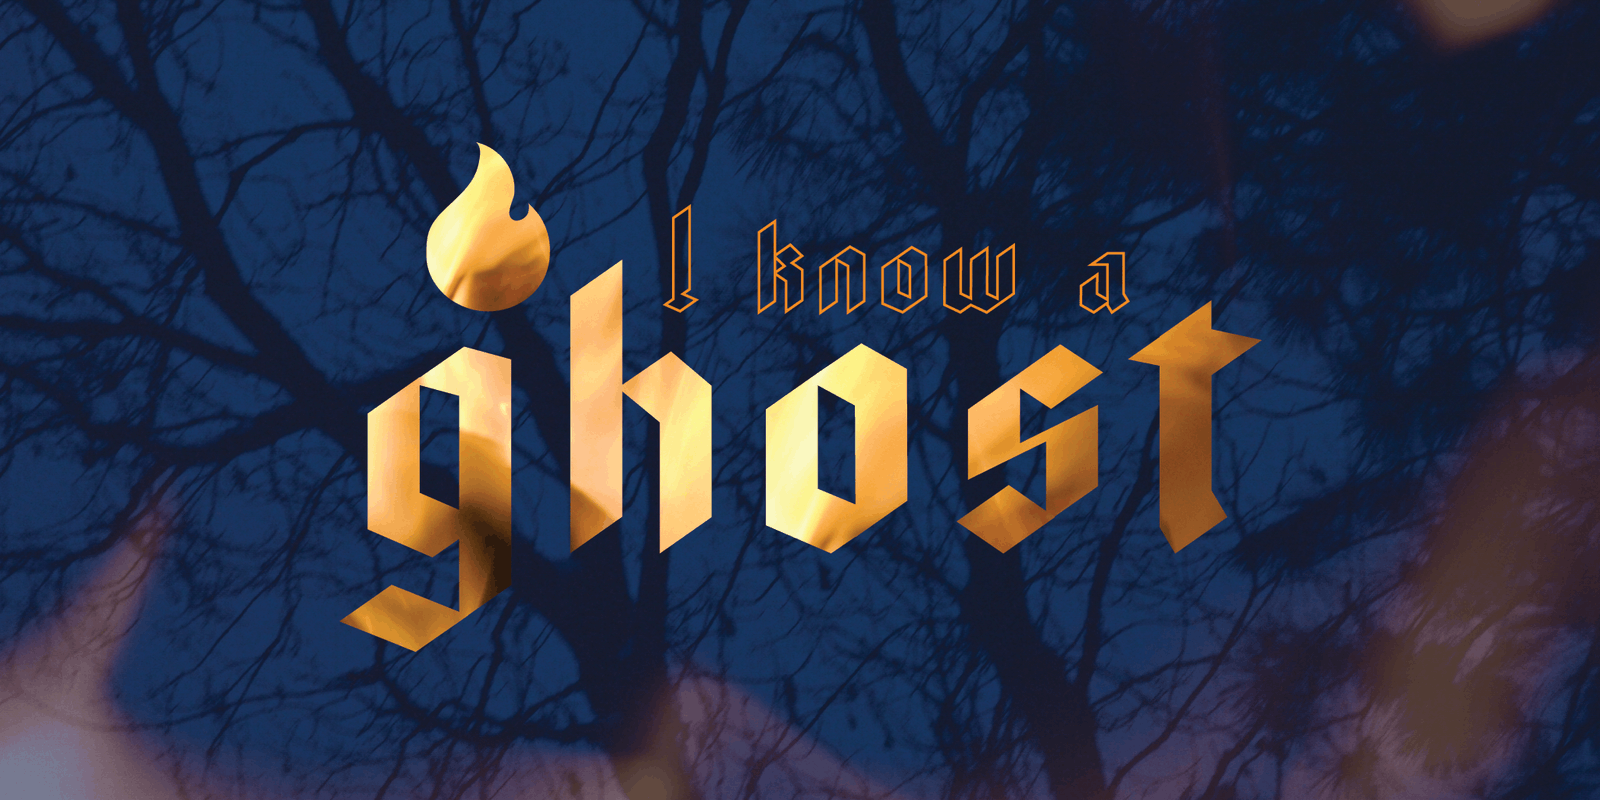 I Know a Ghost